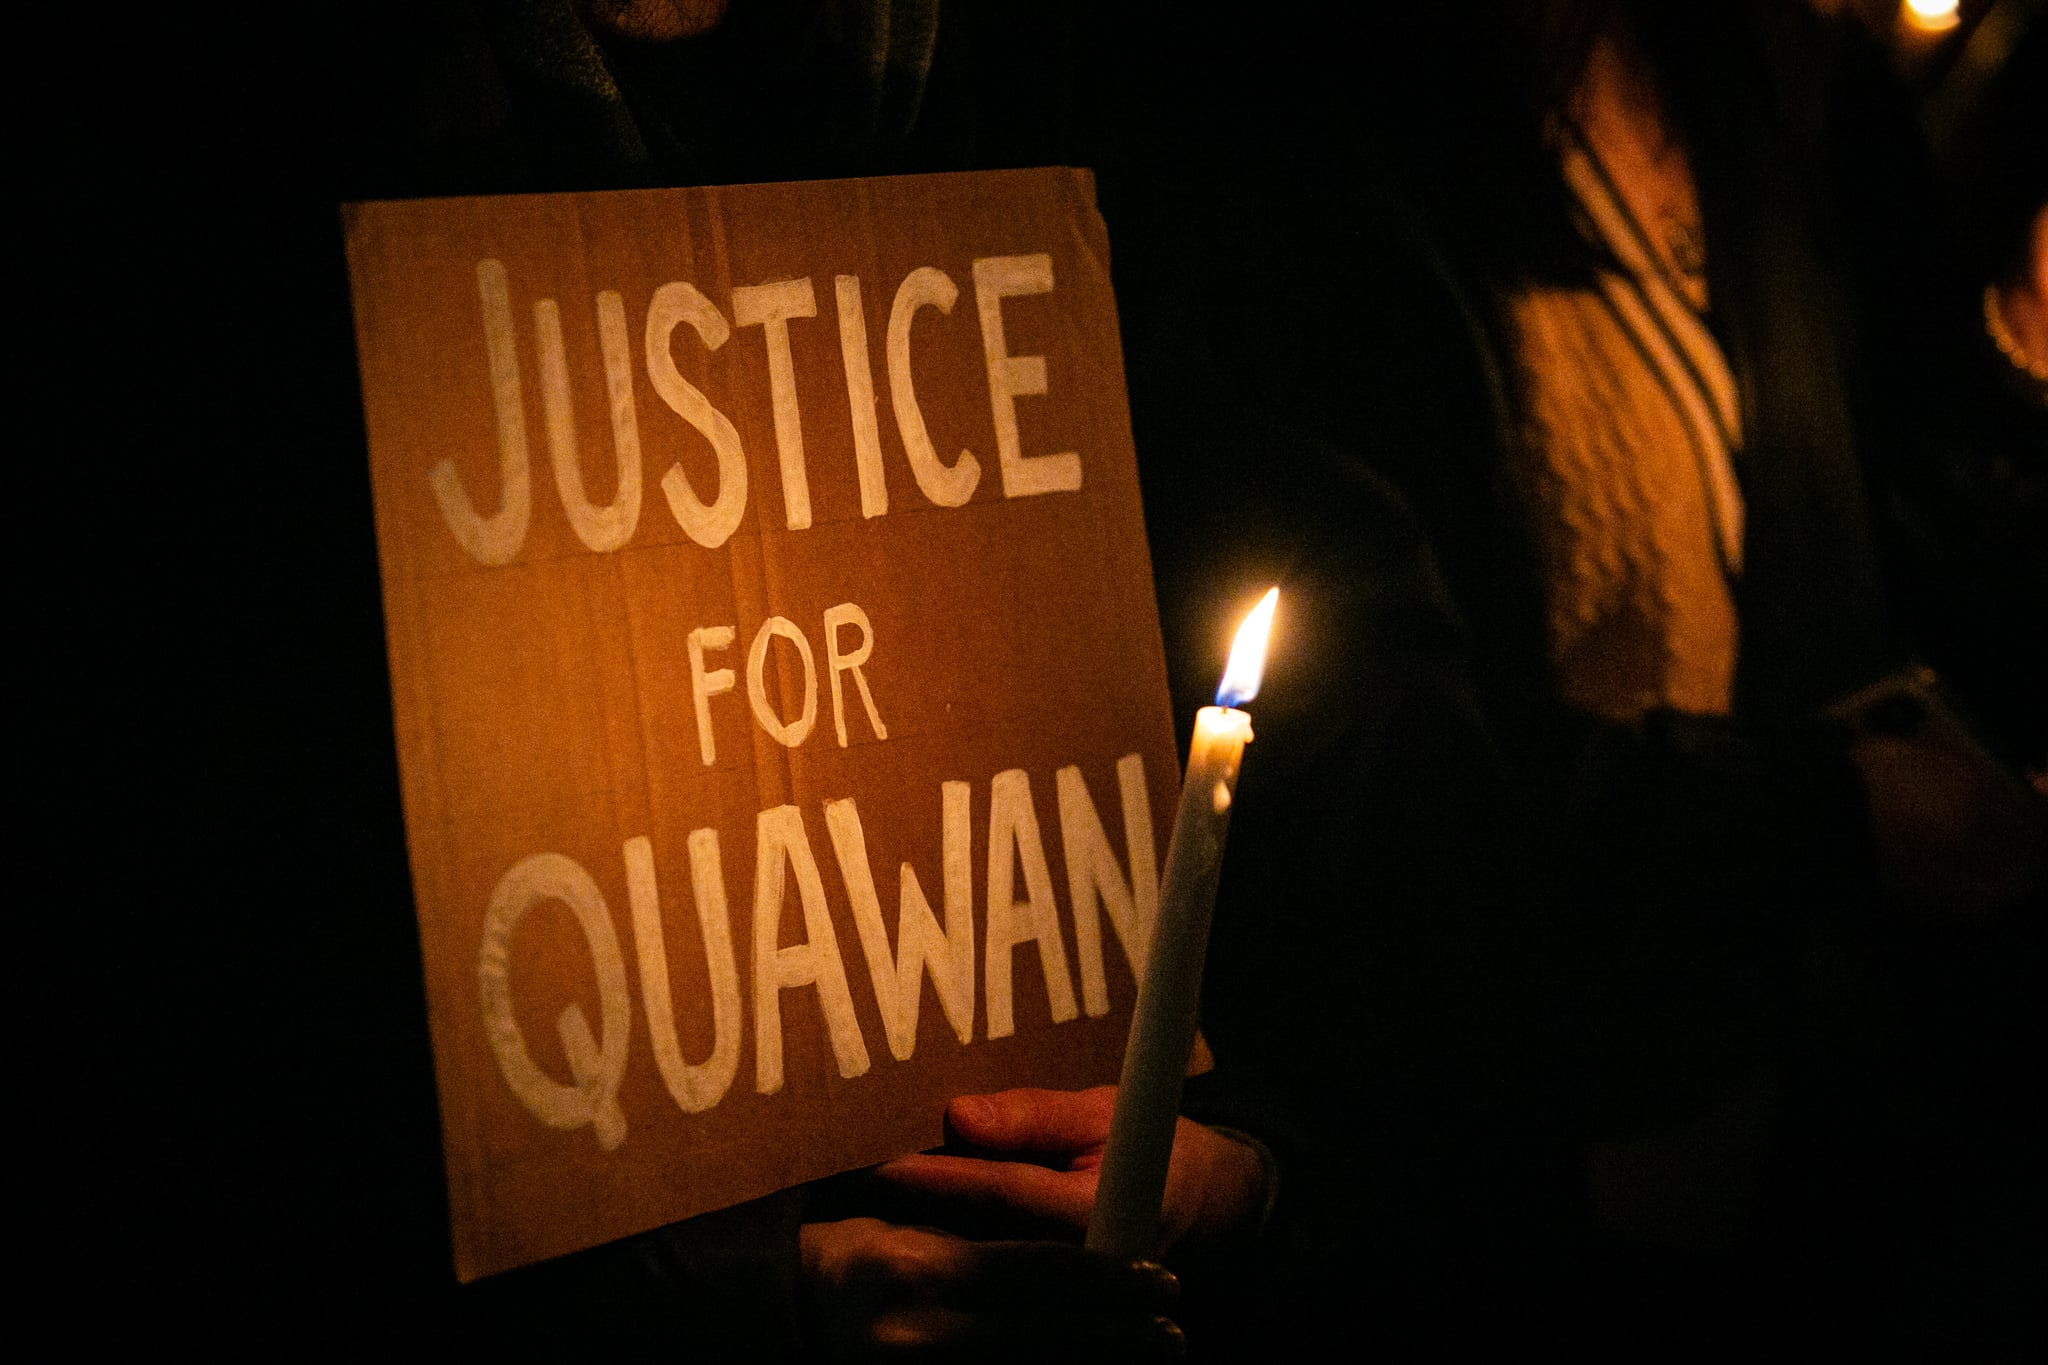 Demonstrators held a vigil at Foley Square in New York City to call for justice for Quawan Charles on November 13, 2020. This comes after the 15-year-old boy went missing in Baldwin, Louisiana and was subsequently found dead in a field, mutilated with cuts and burns on his body. The local sheriff's department told the boy's family that he had drowned. However, Quawan's family says the case has all the markings of a modern-day lynching. (Photo by Karla Ann Cote/NurPhoto via Getty Images)